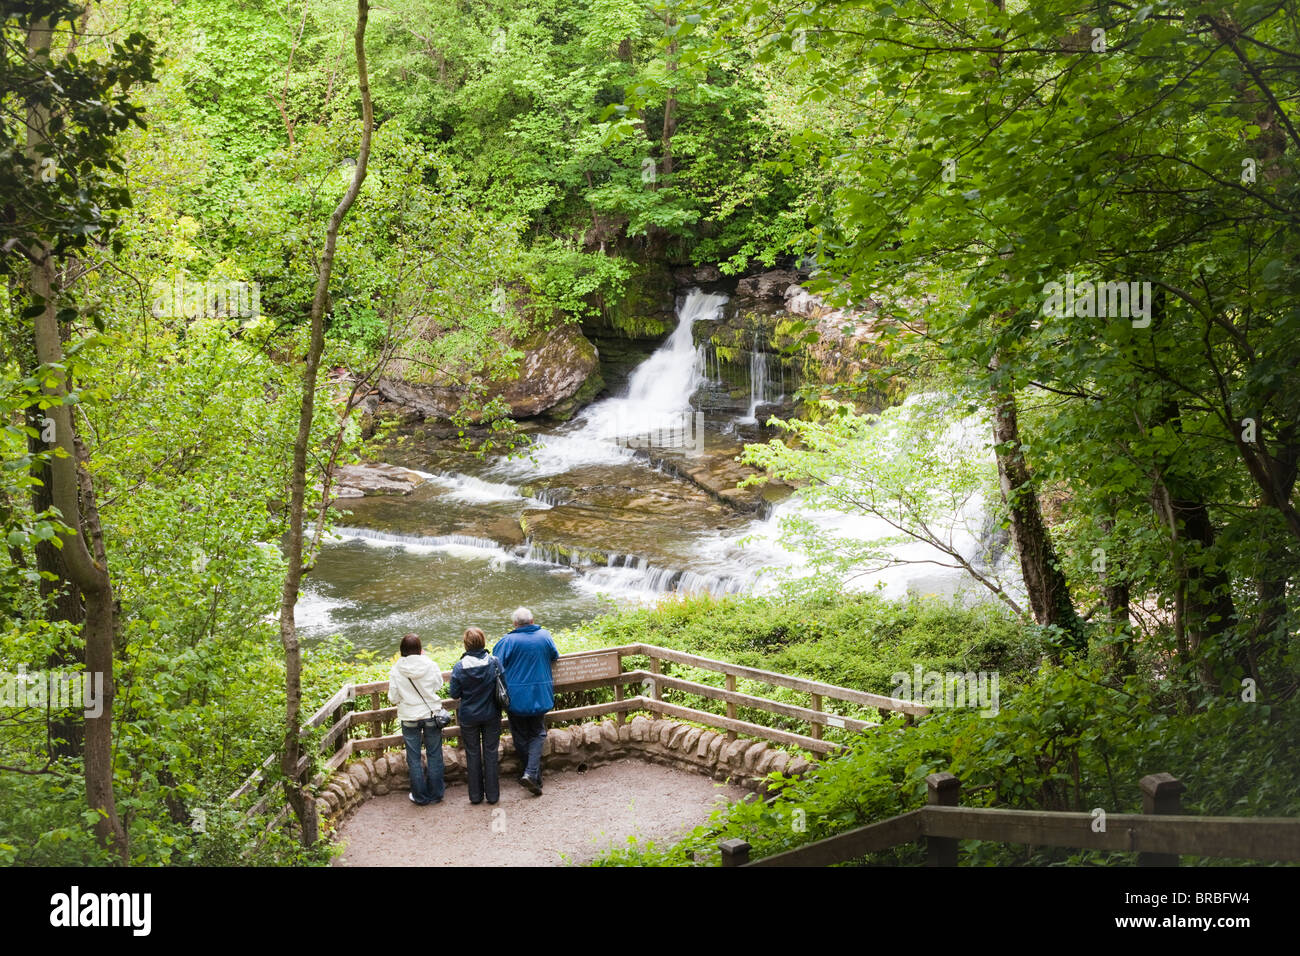 Visitors enjoying the Middle Falls on the River Ure at Aysgarth, North Yorkshire, Wensleydale, Yorkshire Dales National - Stock Image